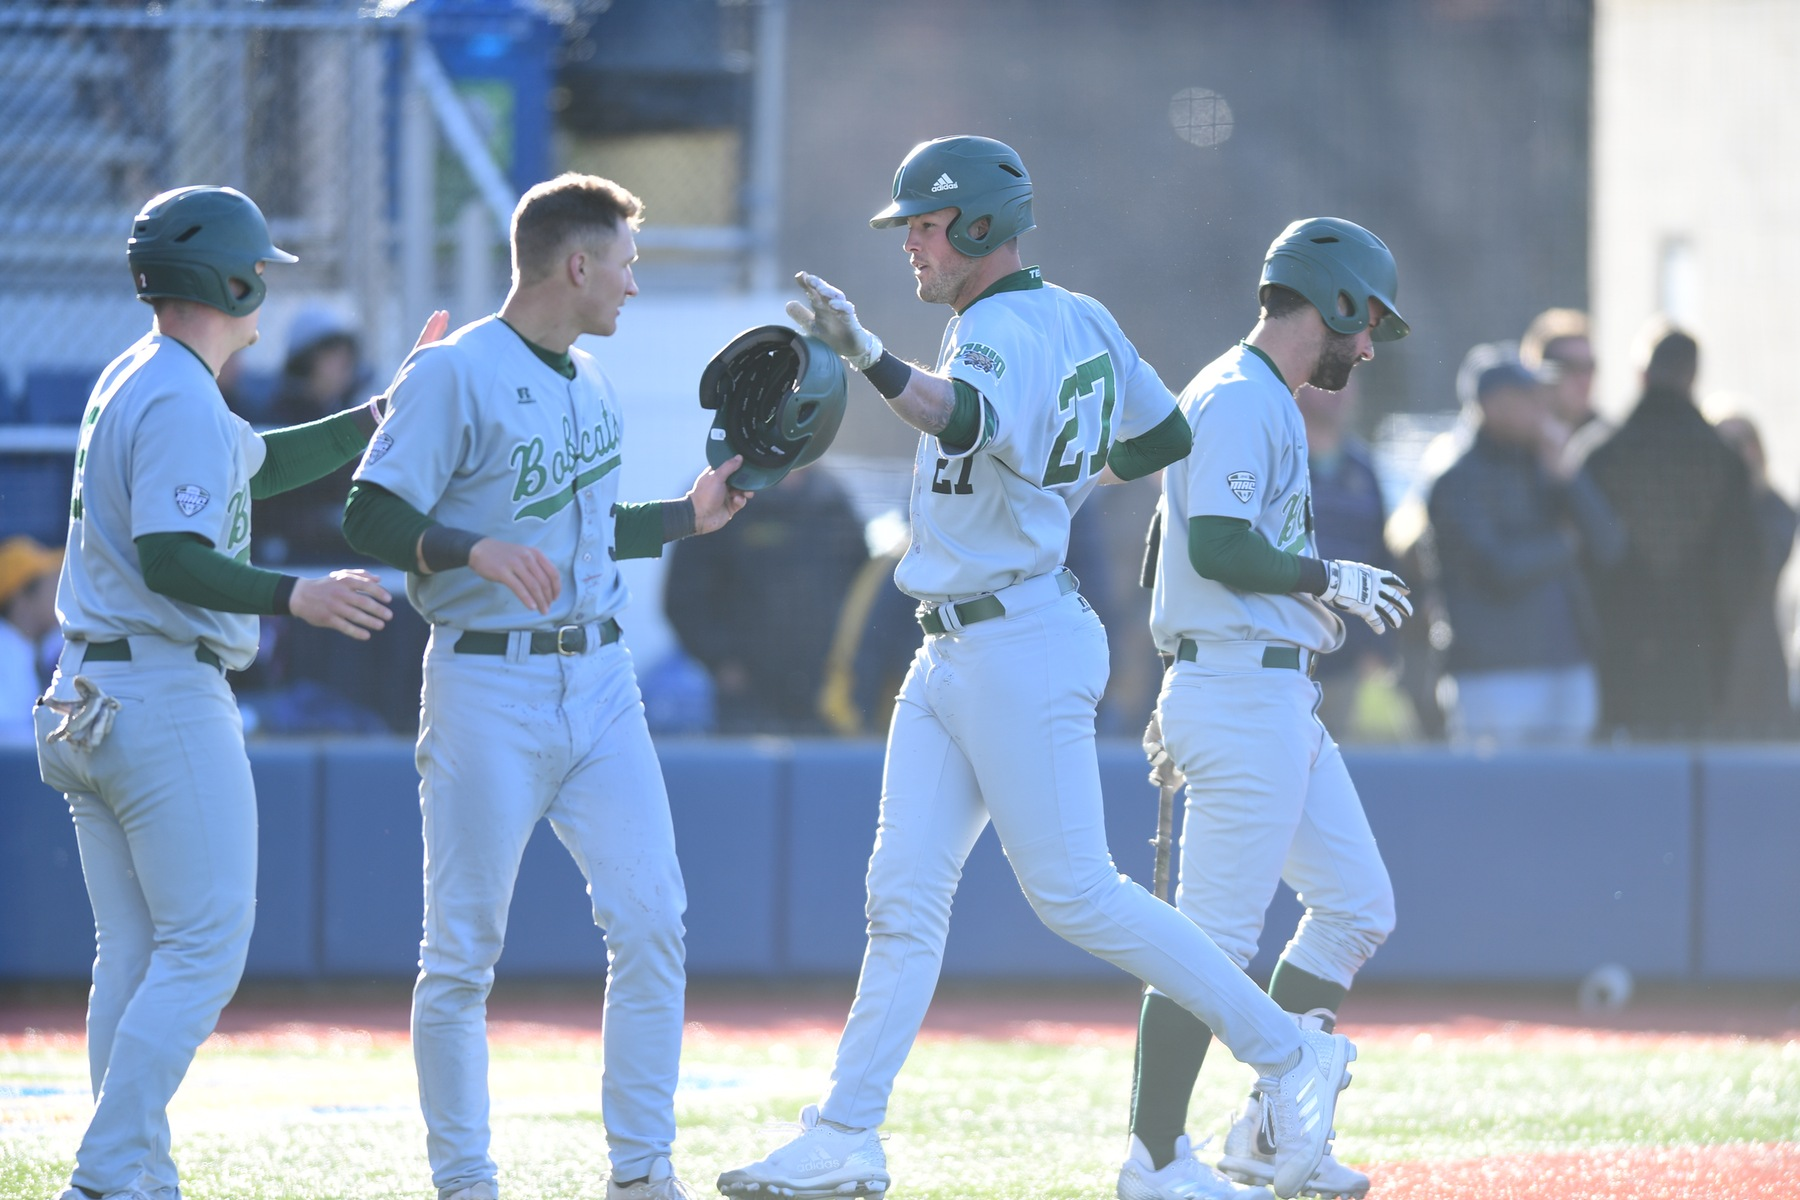 Ohio Baseball Falls To Kent State In Series Opener